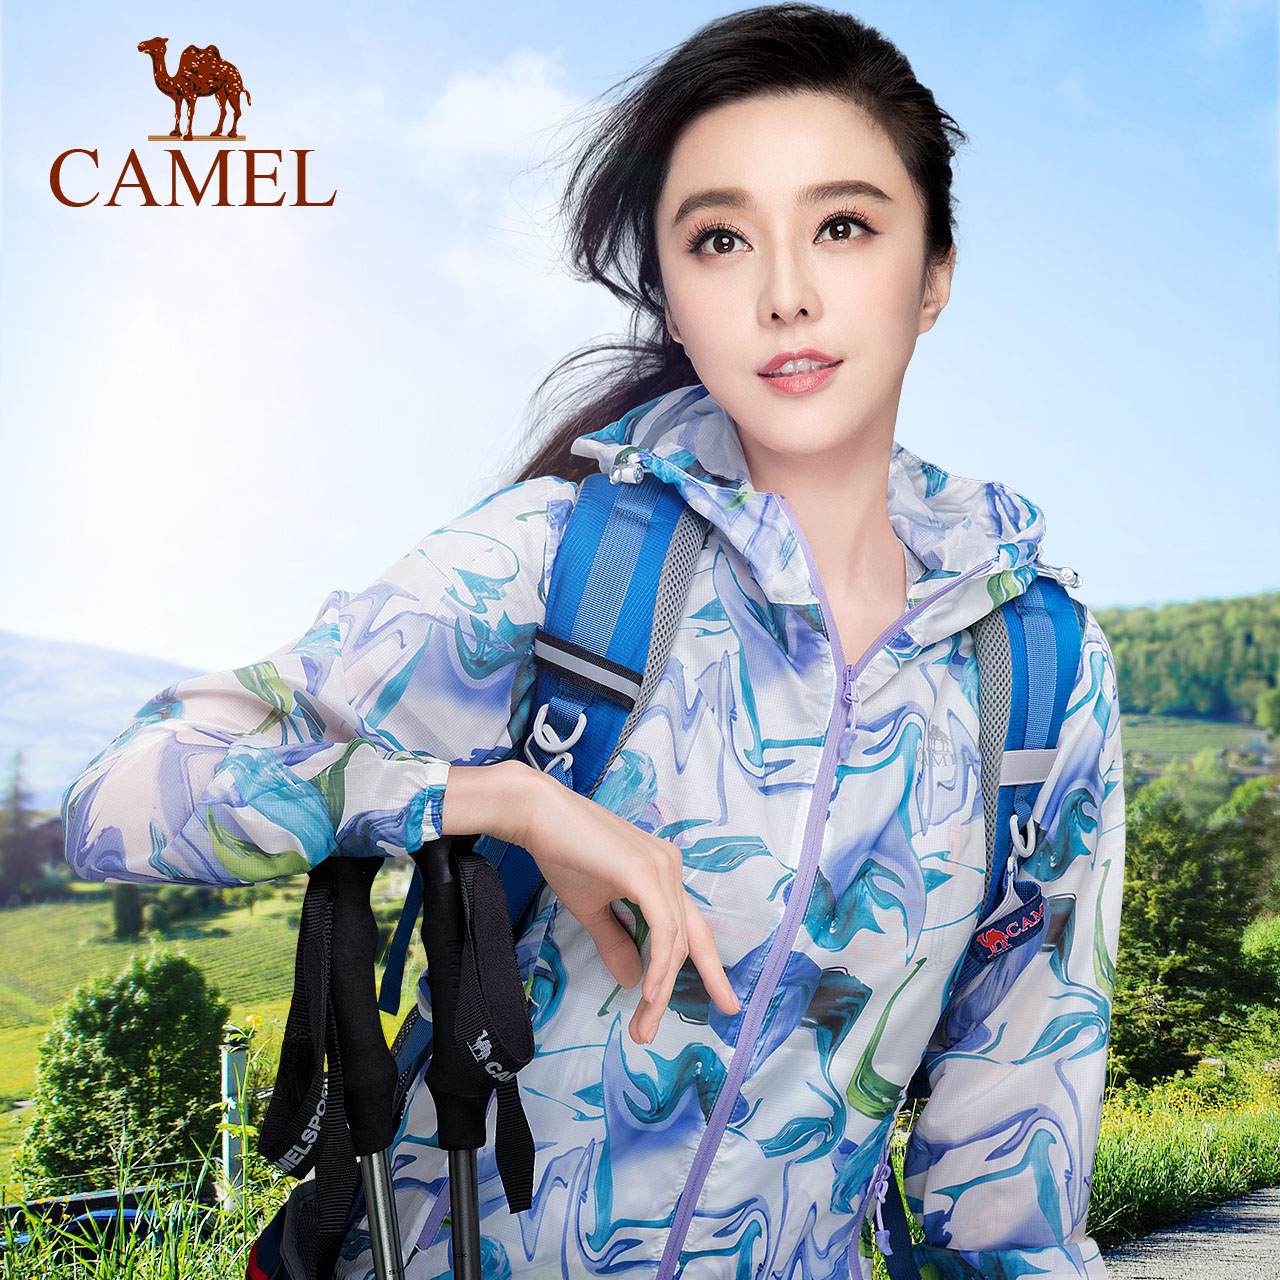 Camel skin clothing female outdoor breathable sun protection clothing female short UV protection sunscreen clothing sports windbreaker jacket